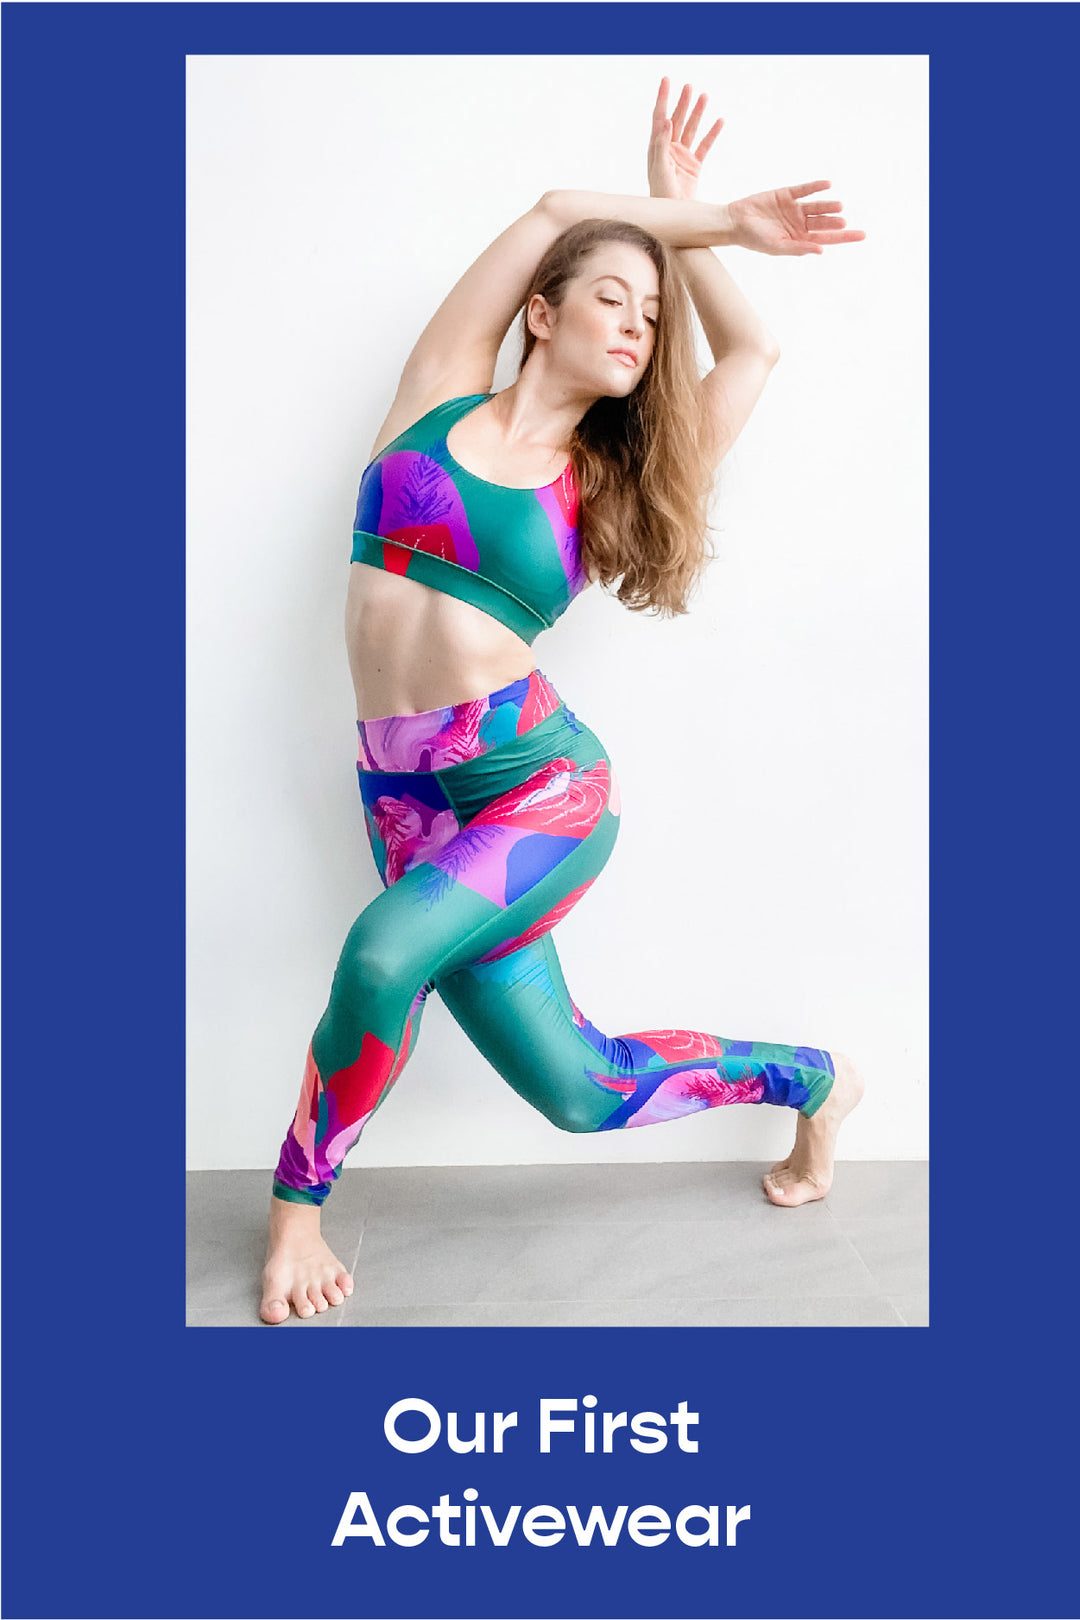 More on our Activewear